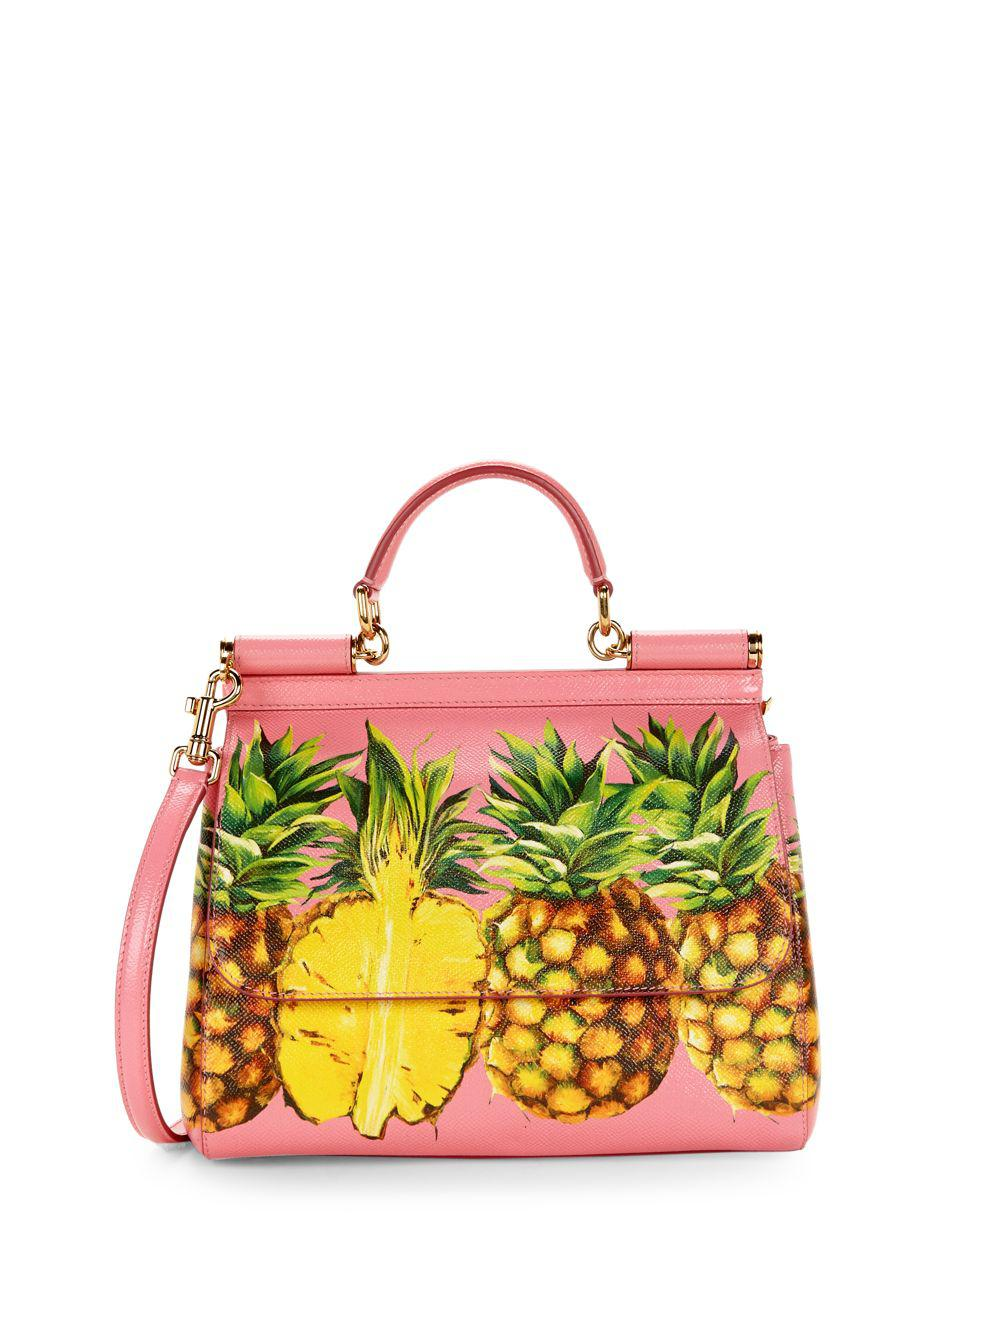 73e4a2742d Dolce & Gabbana Pineapple Print Leather Top Handle Bag - Lyst